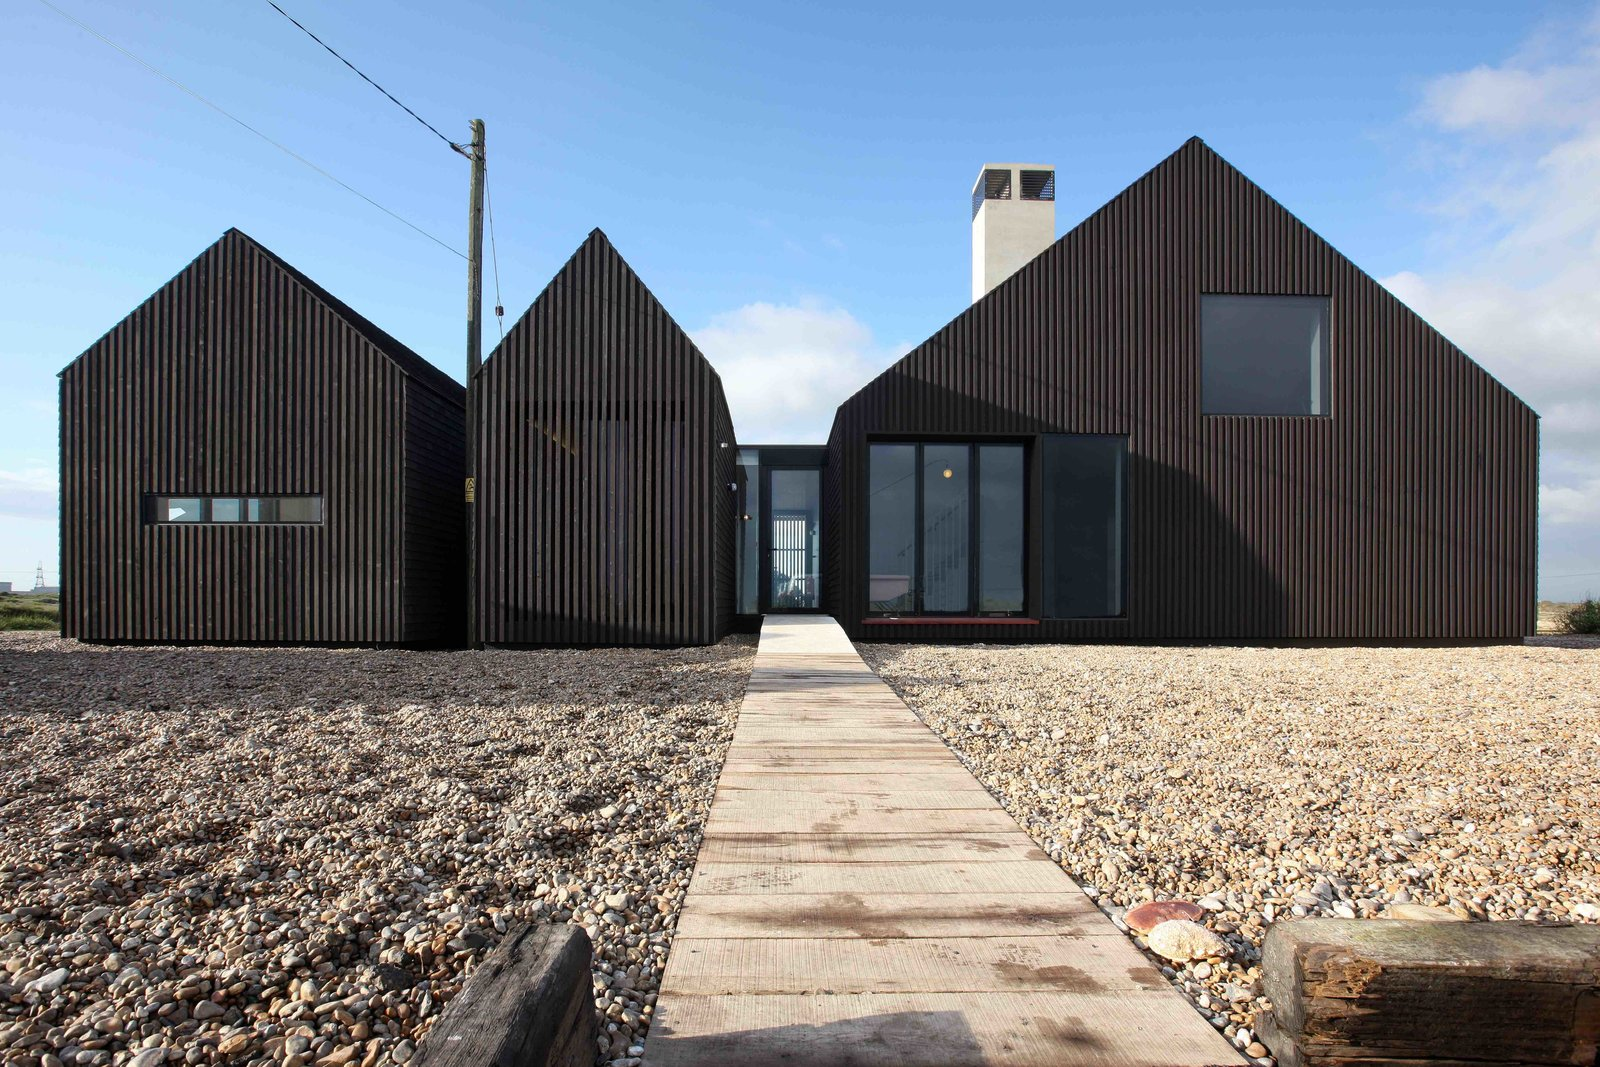 Photo 1 of 13 in 6 British Vacation Homes You Can Stay in That Were Designed by Renowned Architects